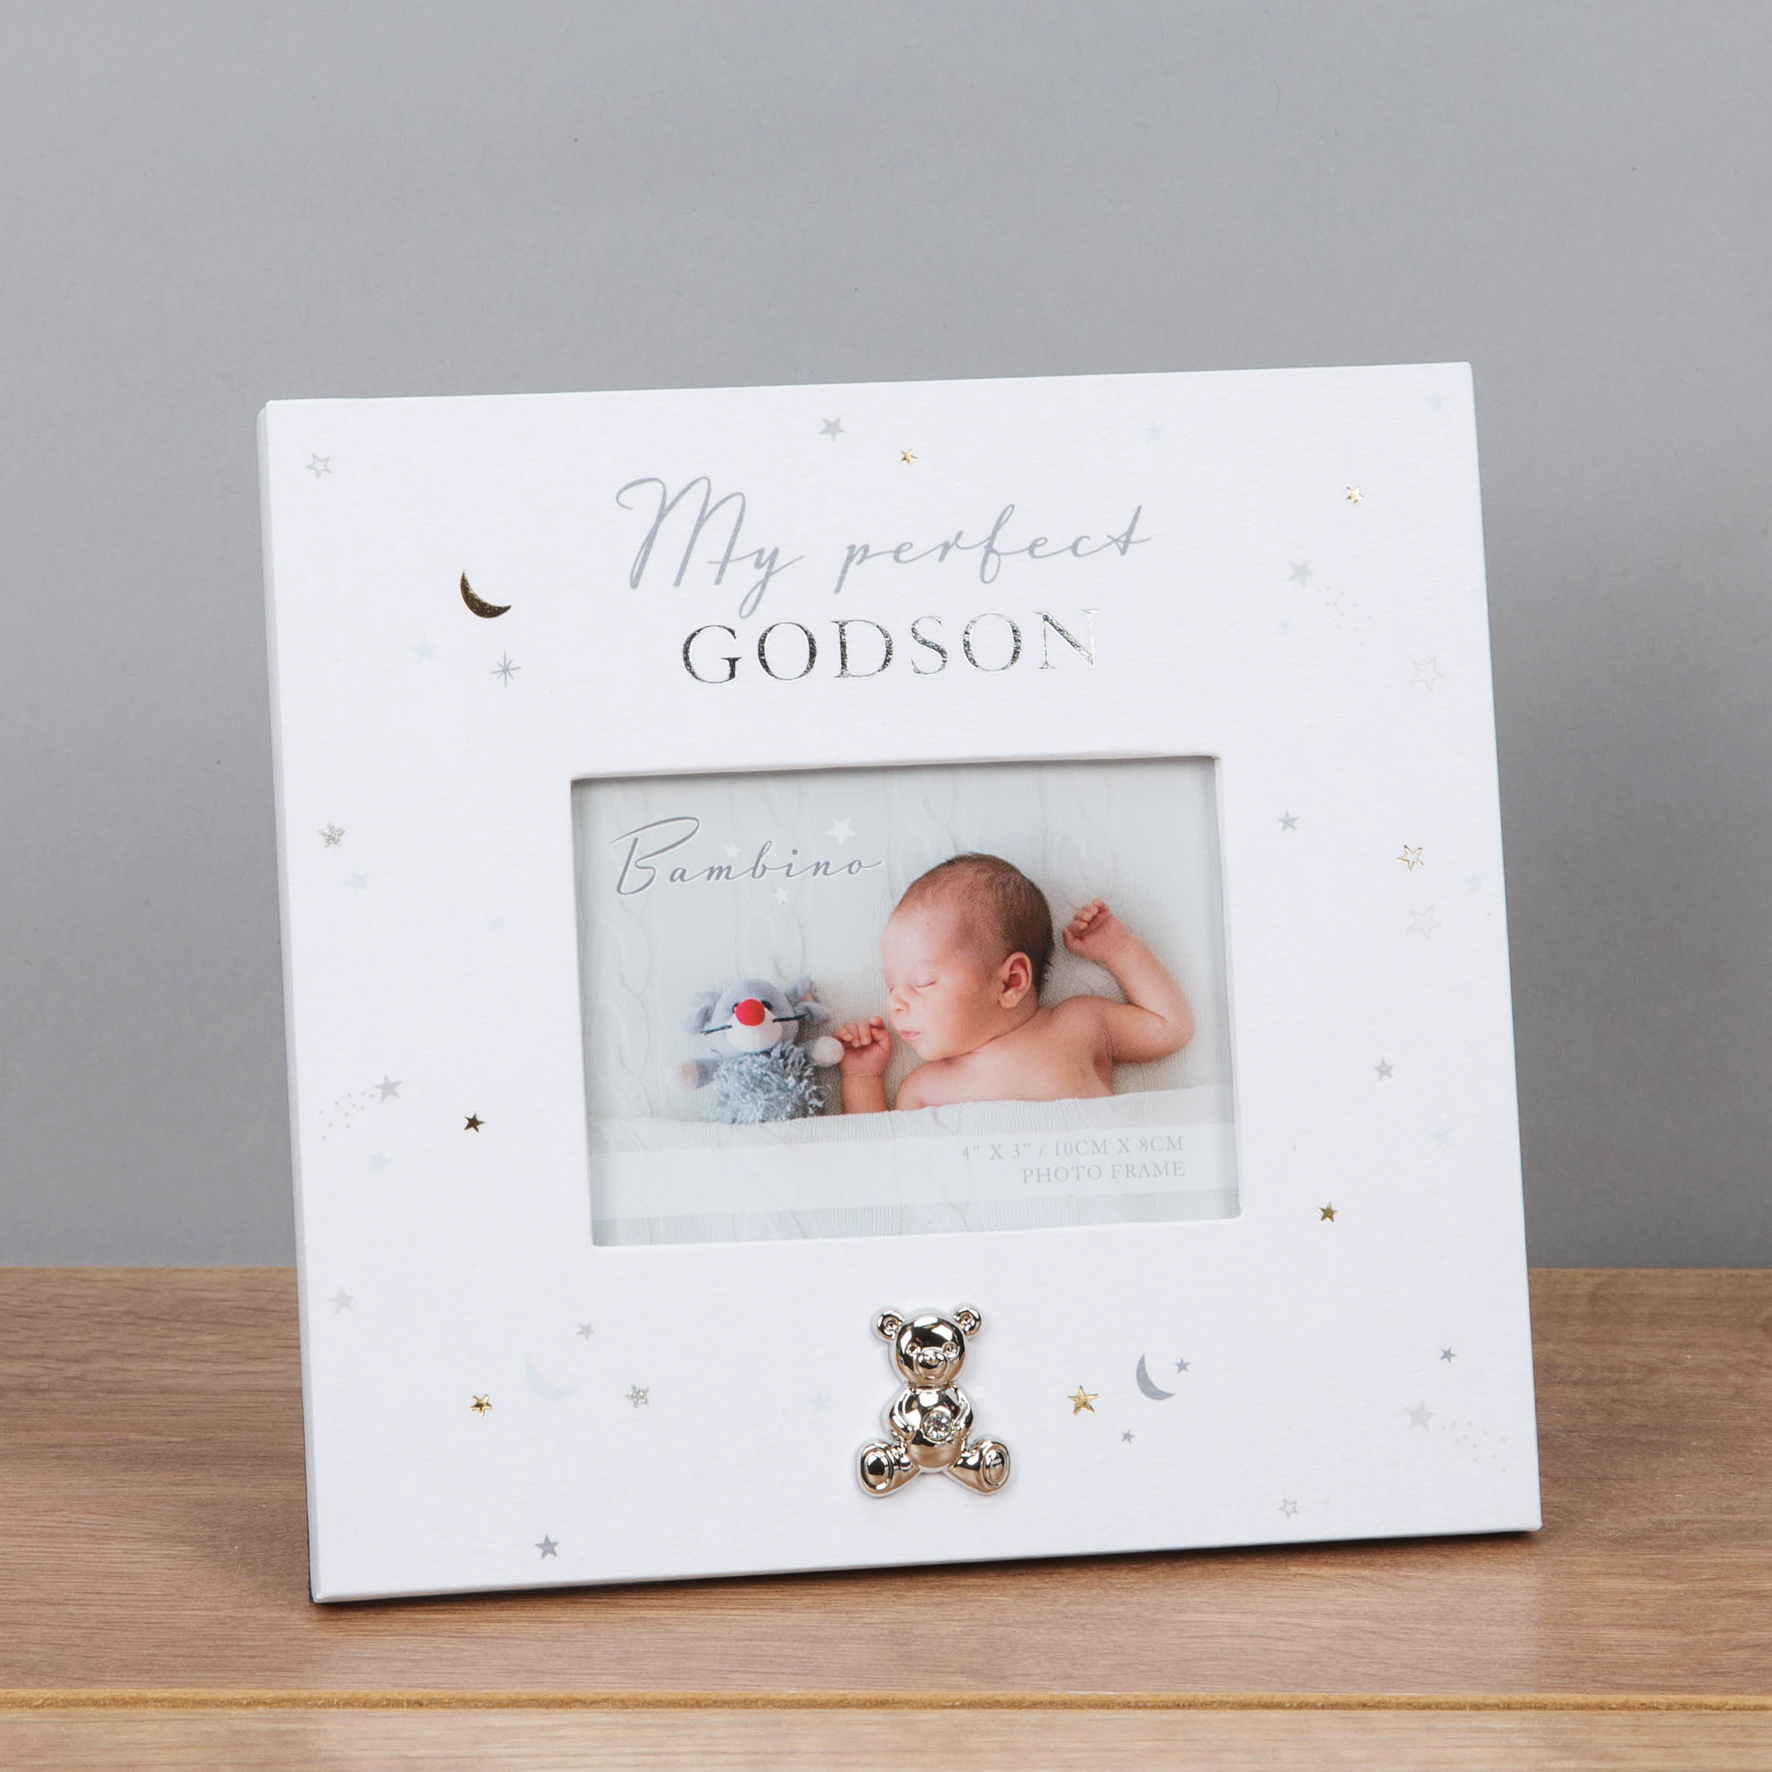 Godson Photo frame